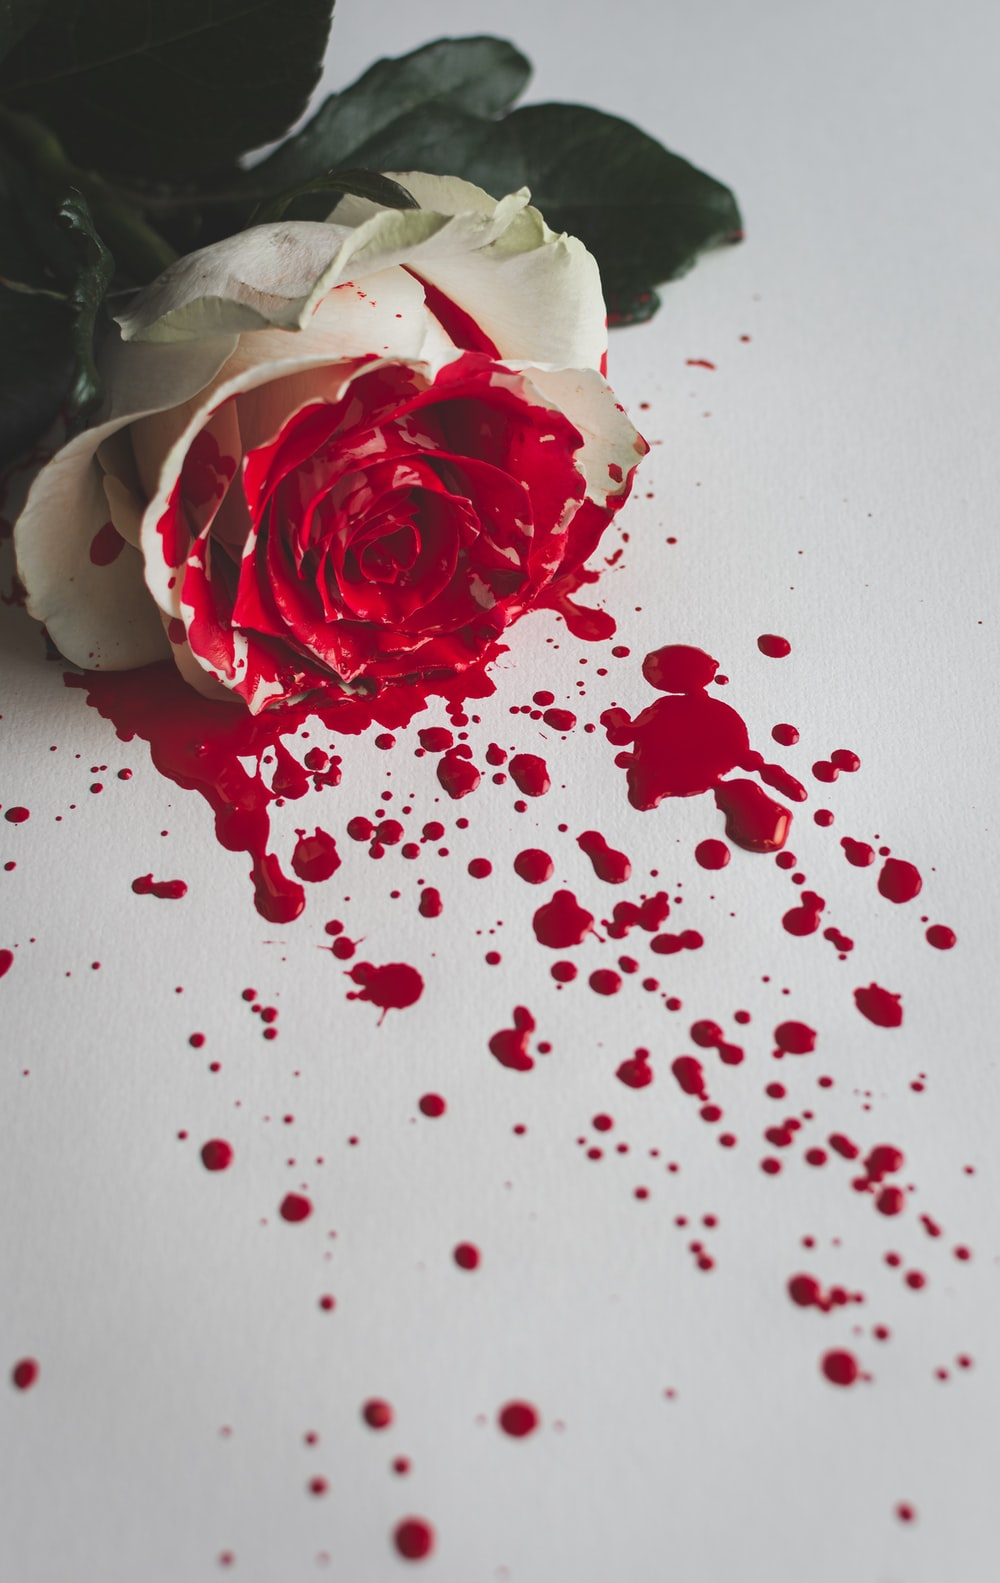 red and white rose petals on white table